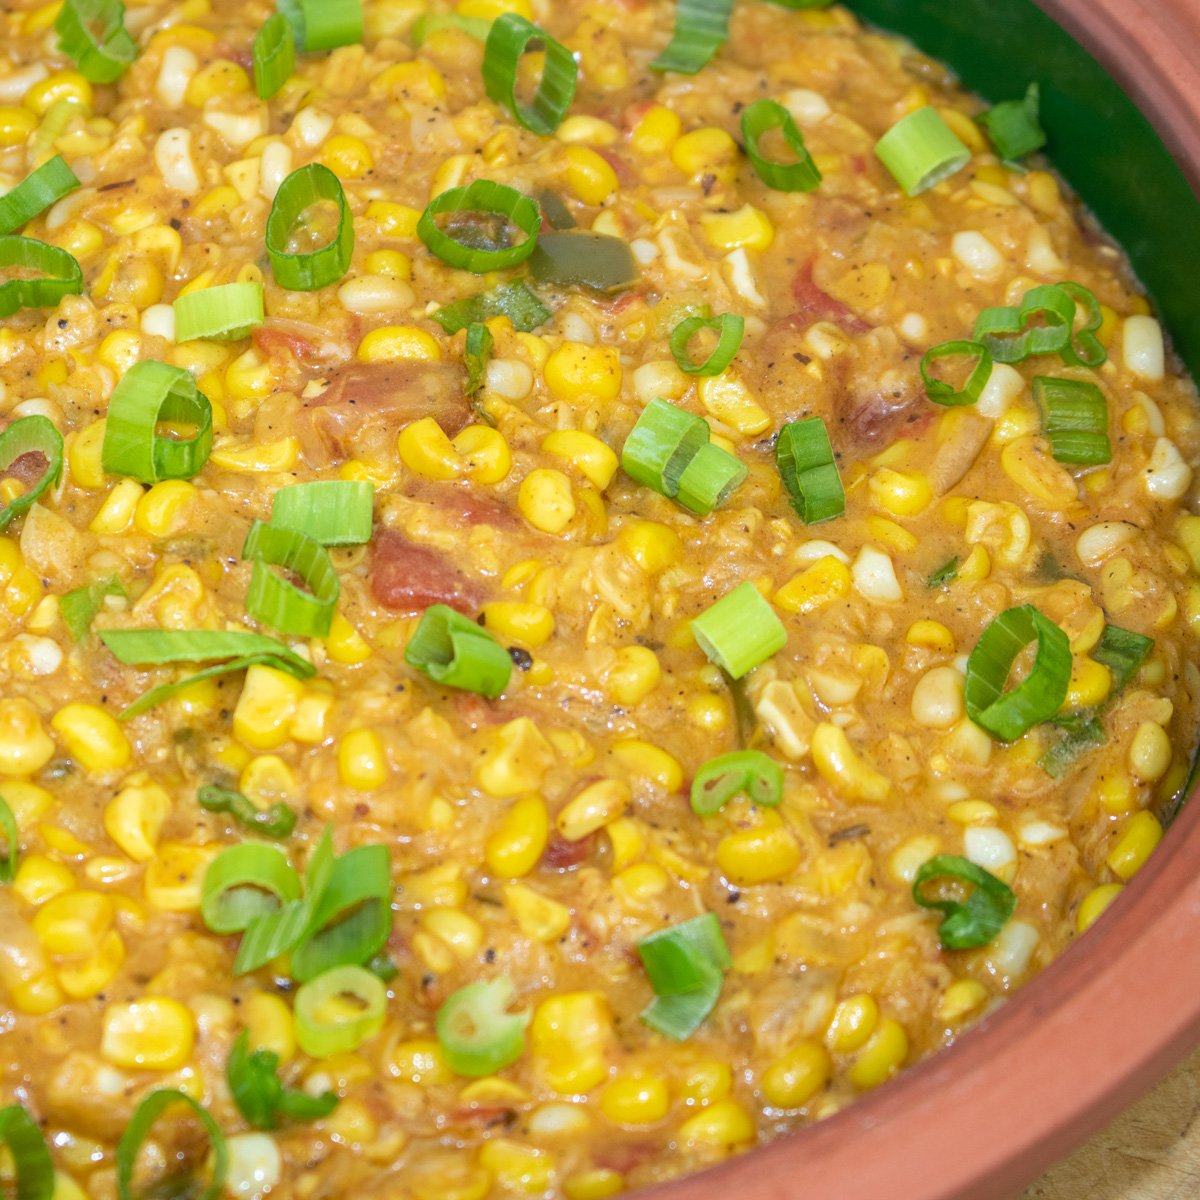 corn maque choux with green onion garnish in a brown bowl